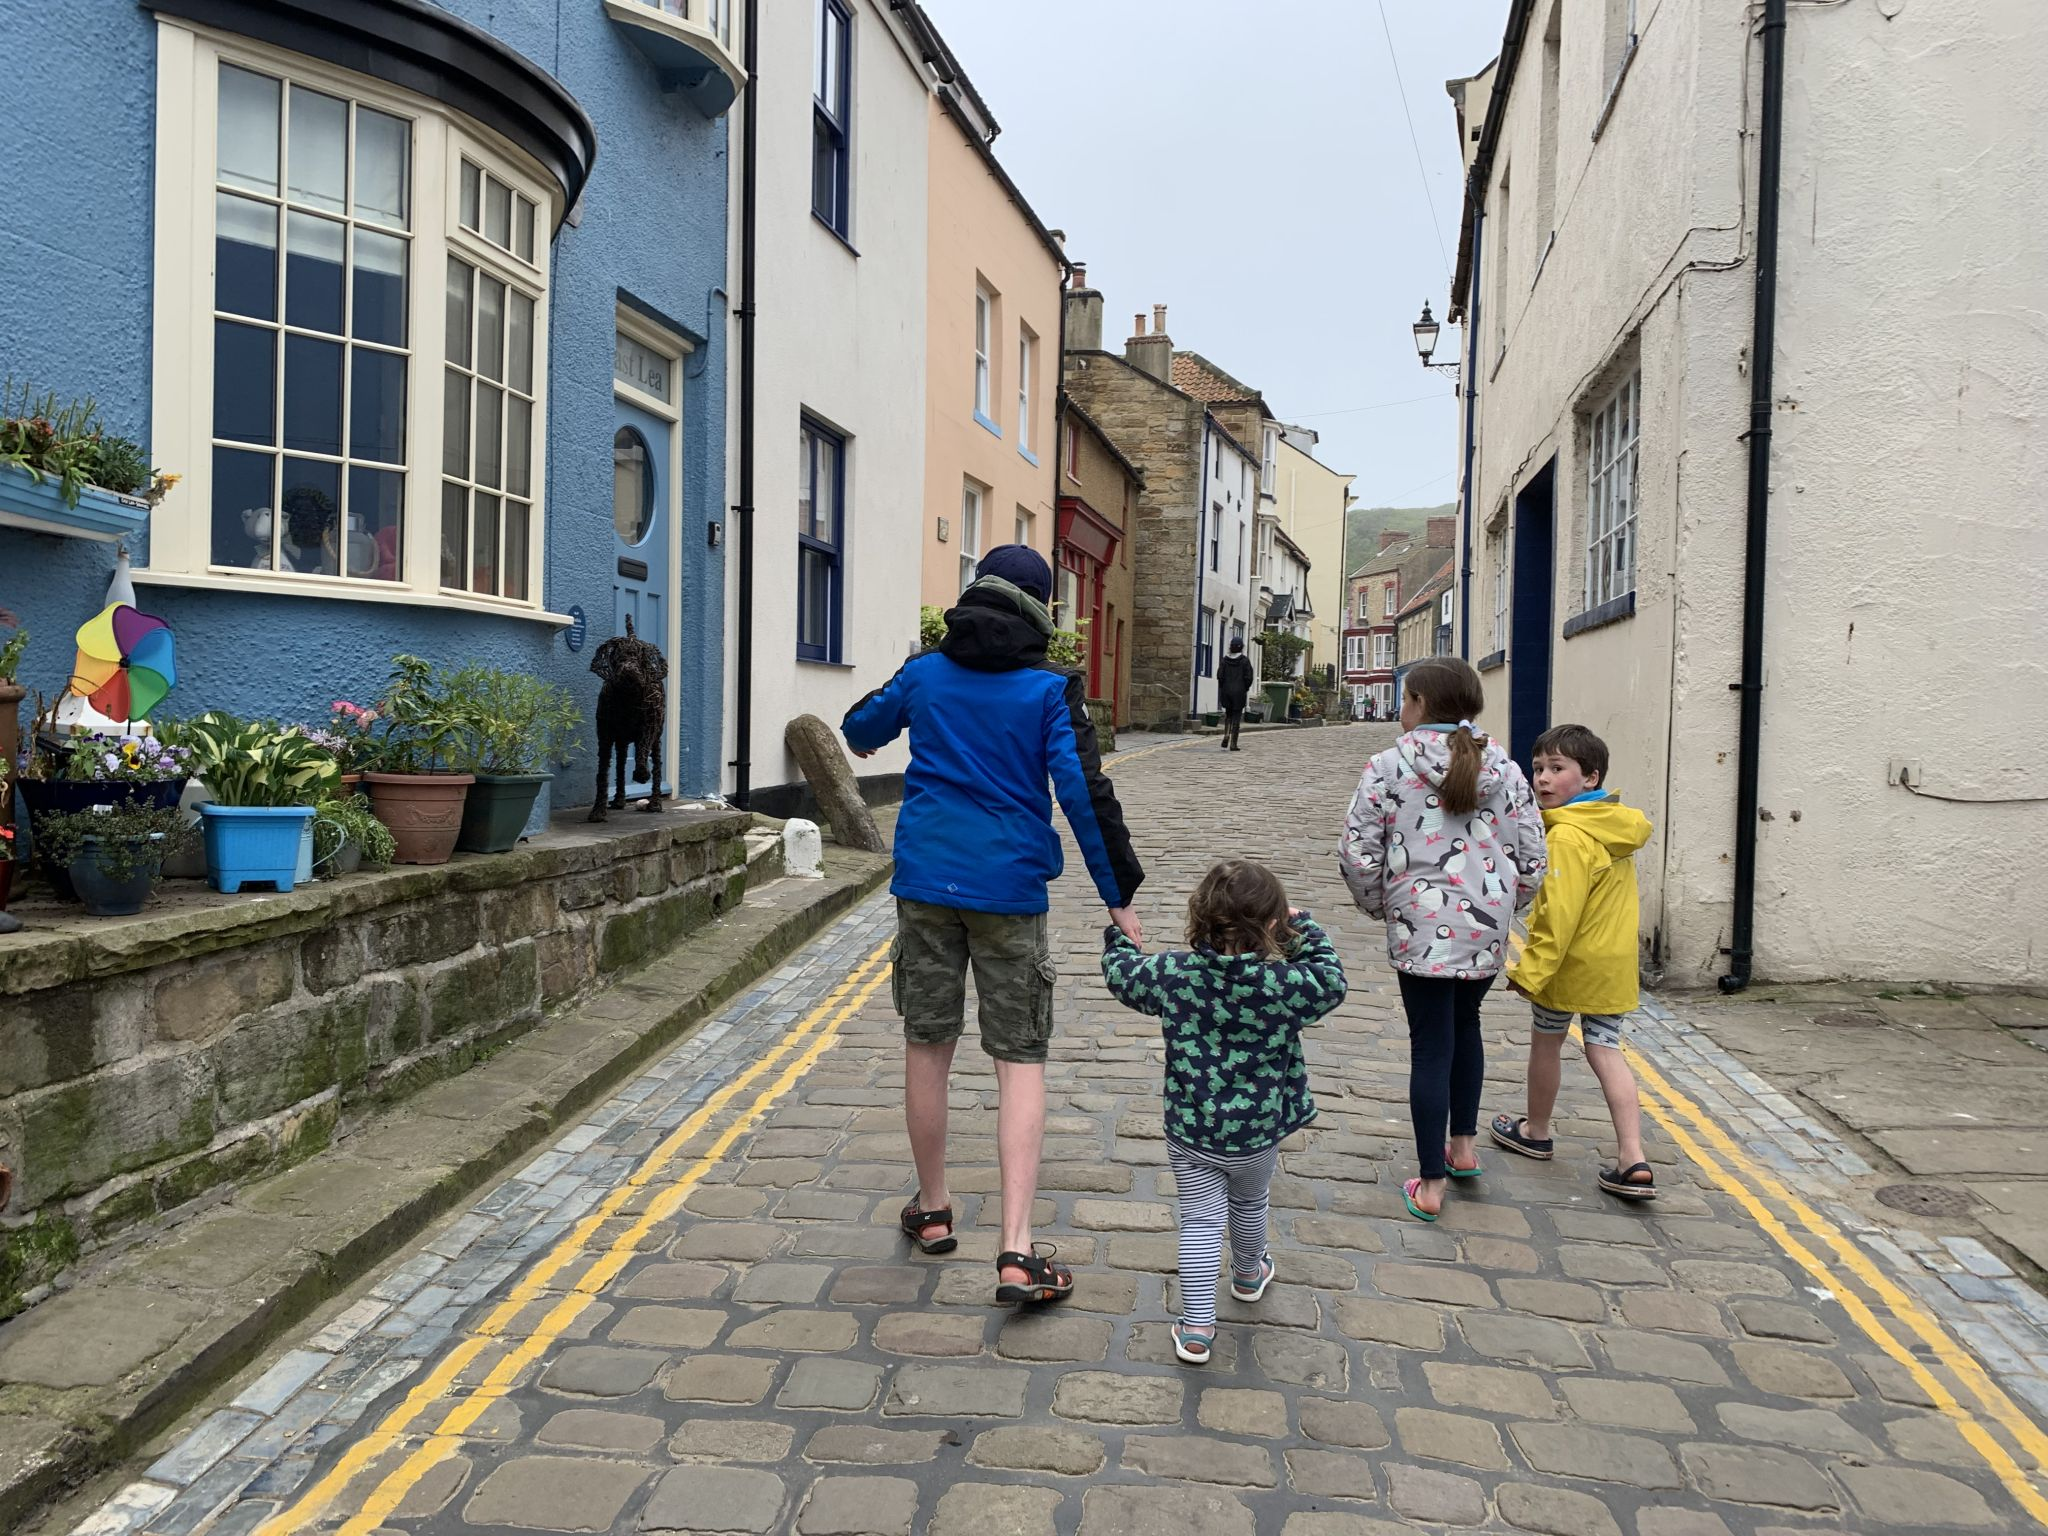 4 children walking up a cobbled street